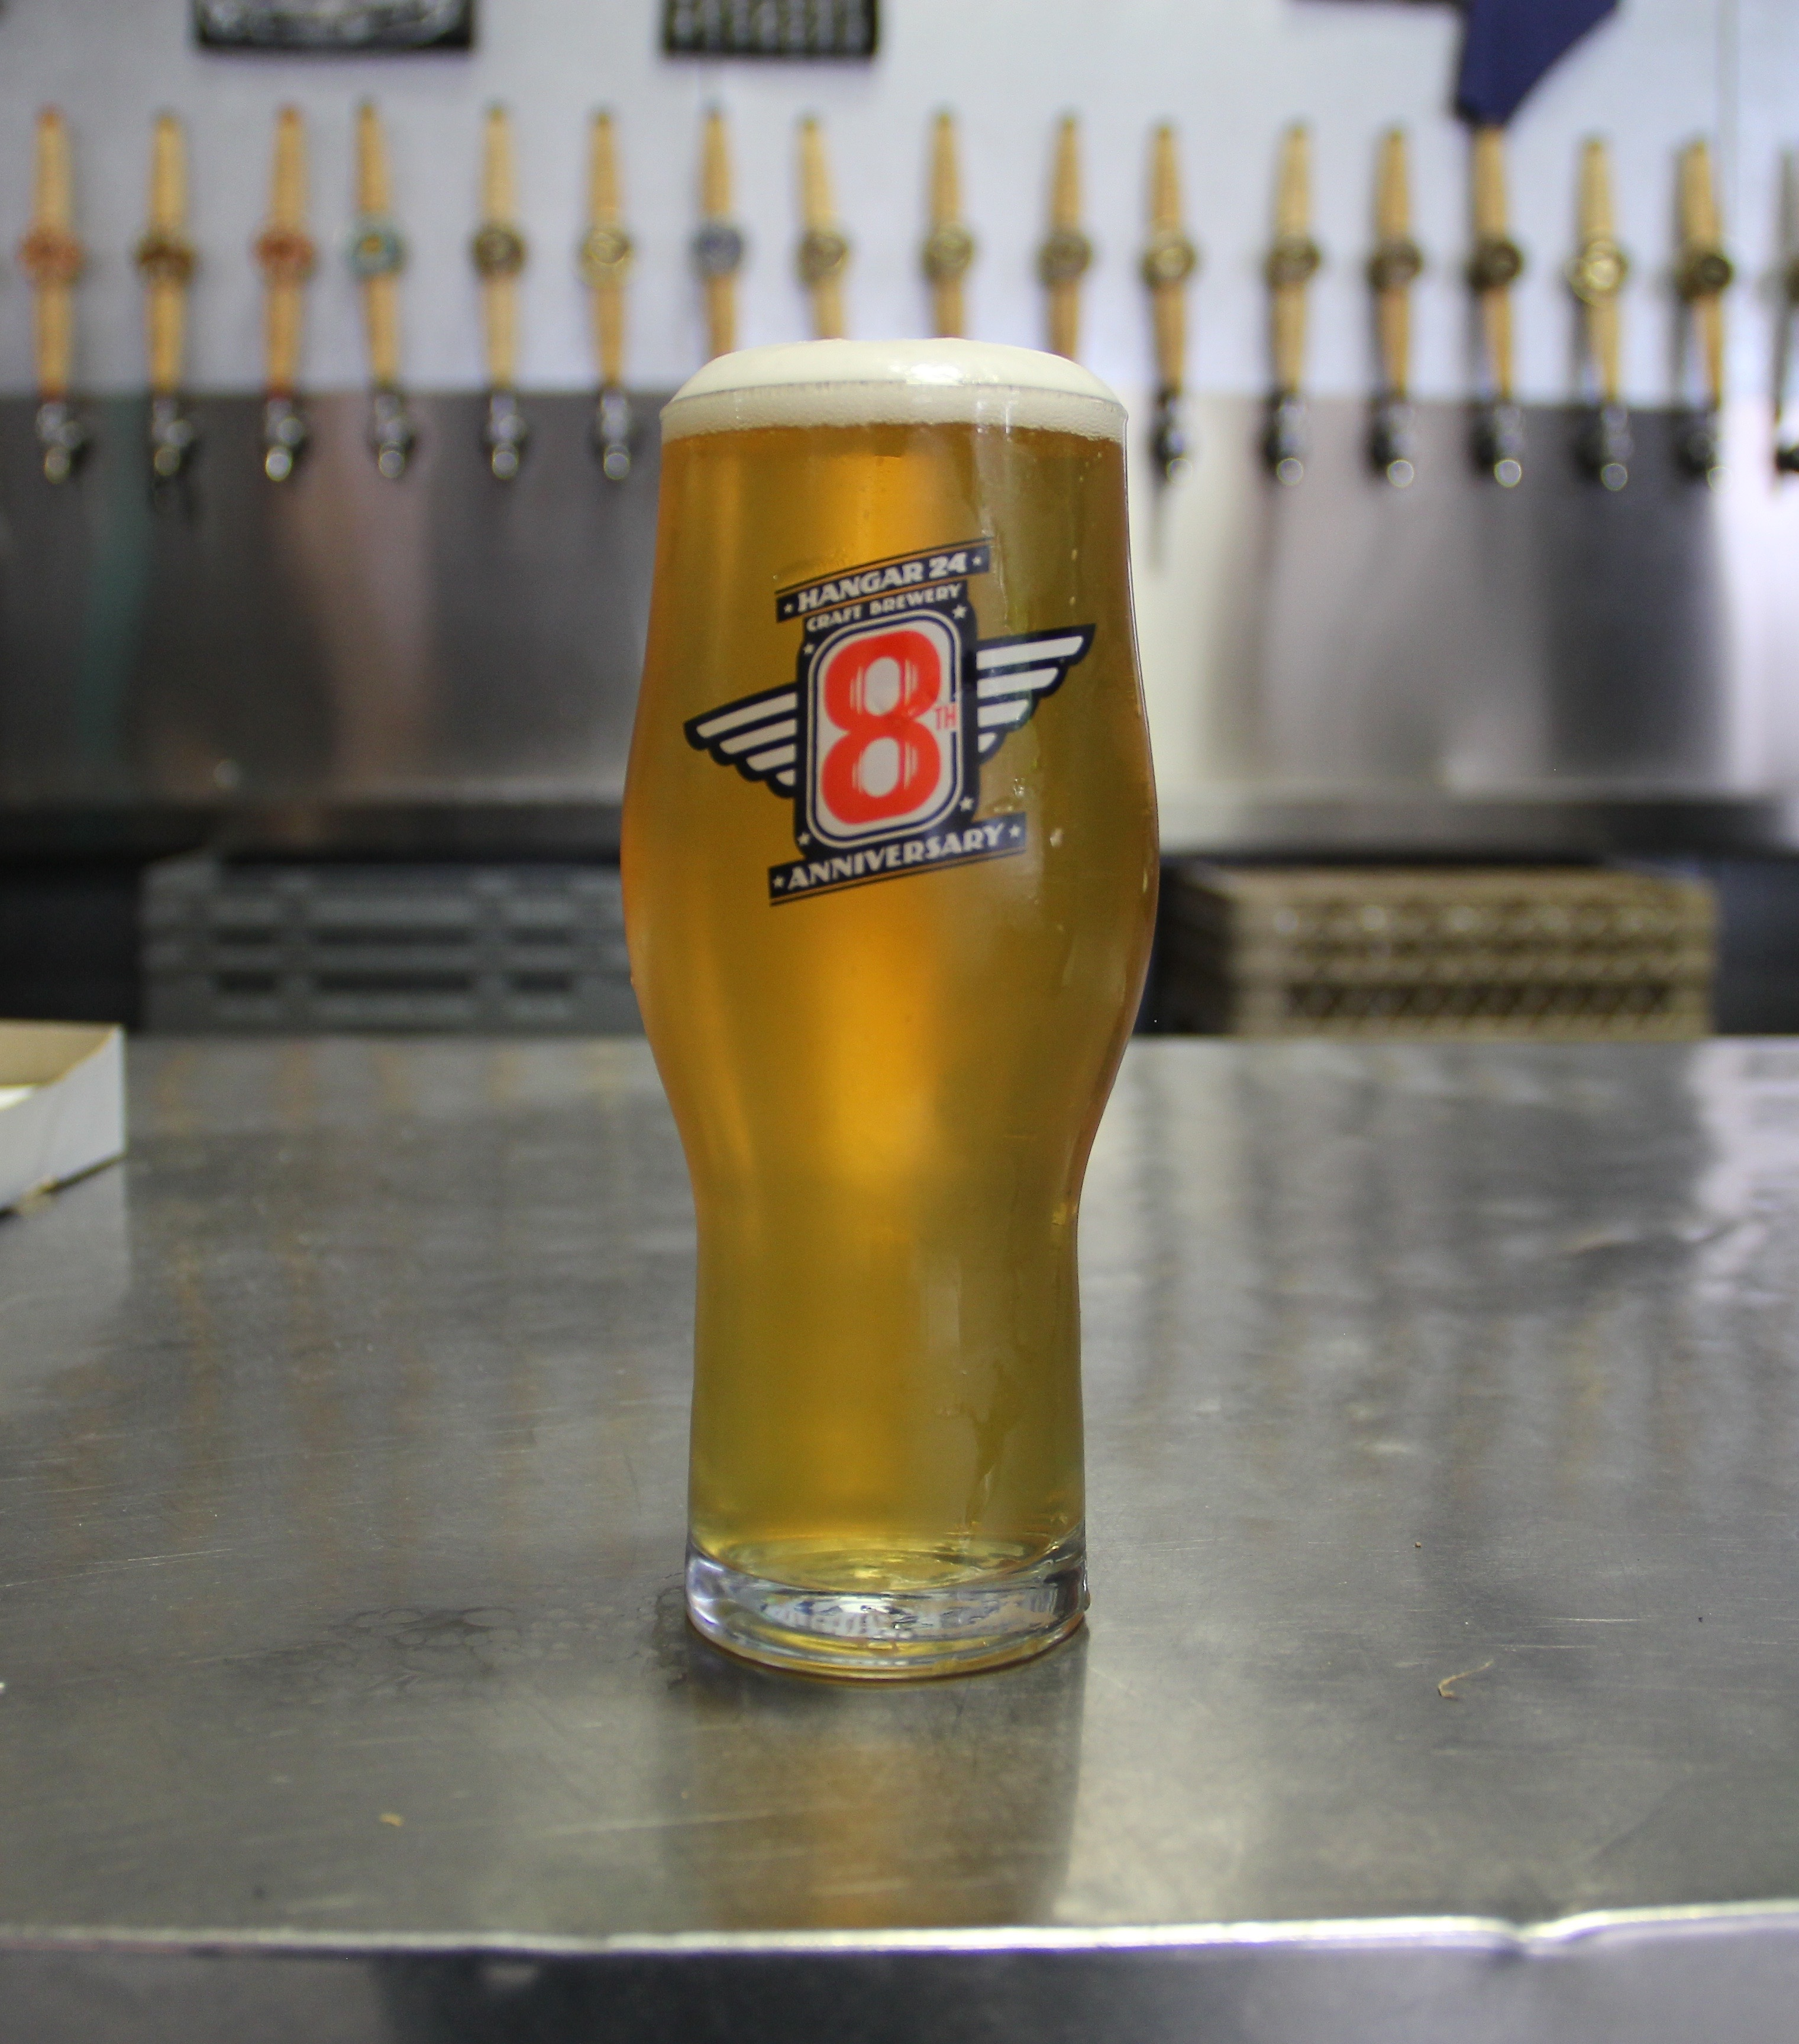 Hangar 24 Brewery Releases Commemorative 8th Anniversary ...